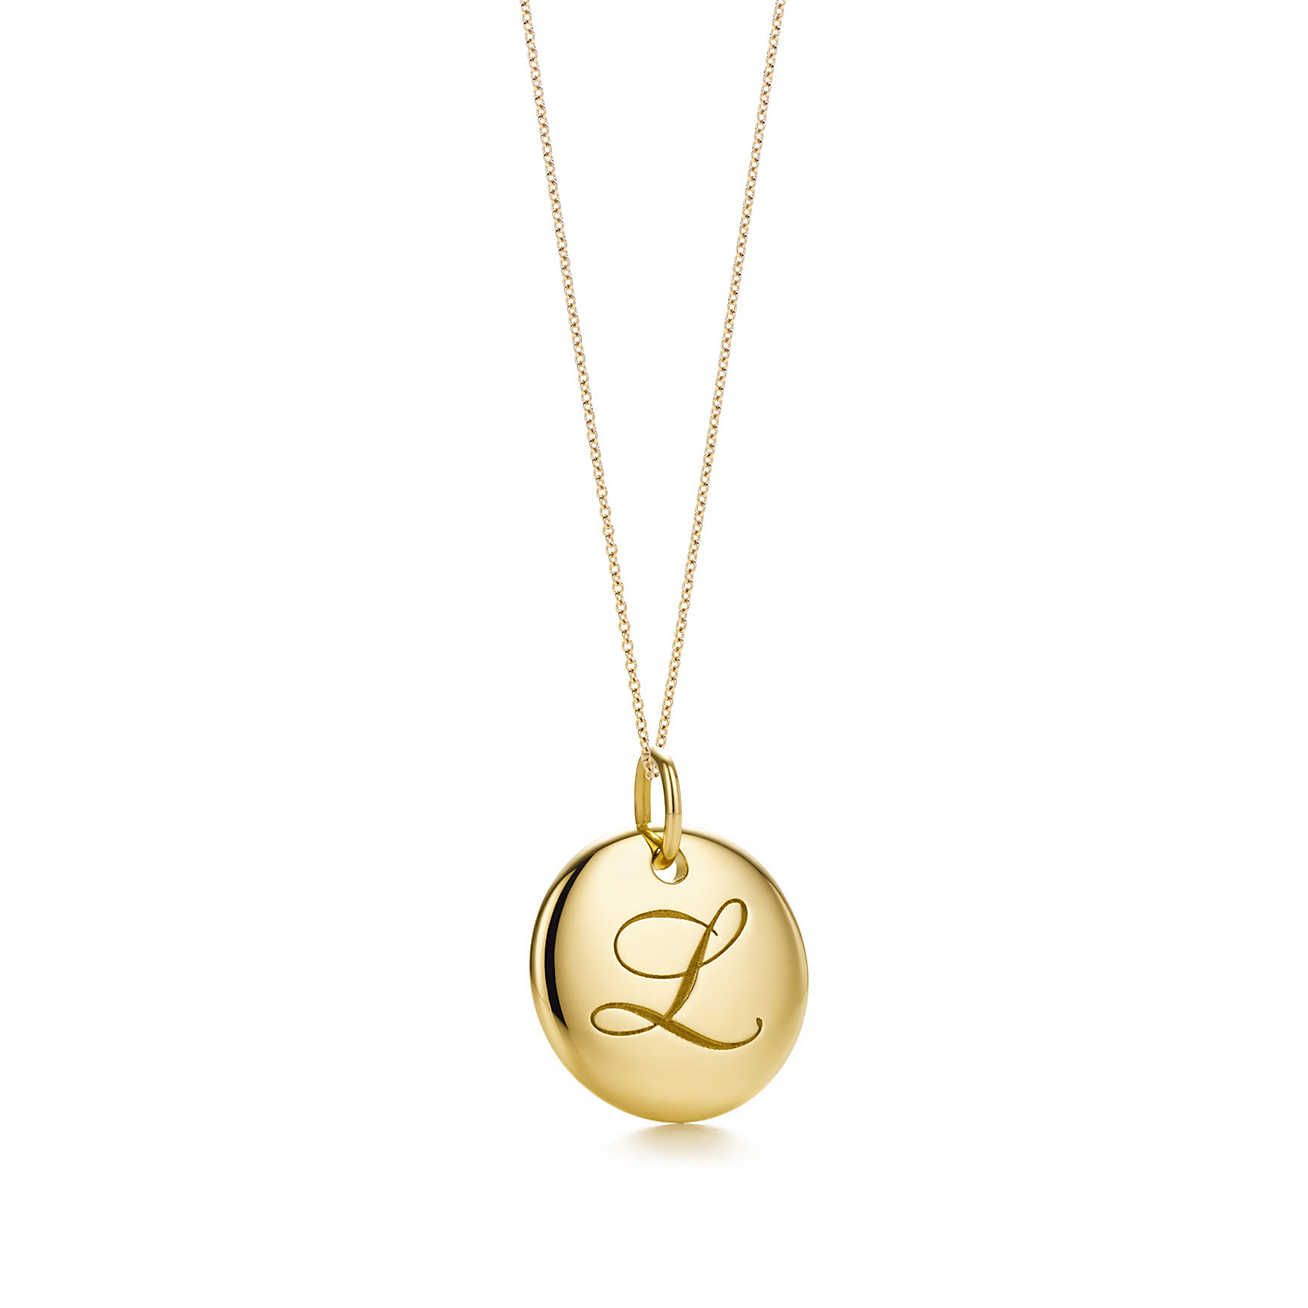 Tiffany Notes alphabet disc charm in 18k gold, small Letters A-Z available - Size K Tiffany & Co.